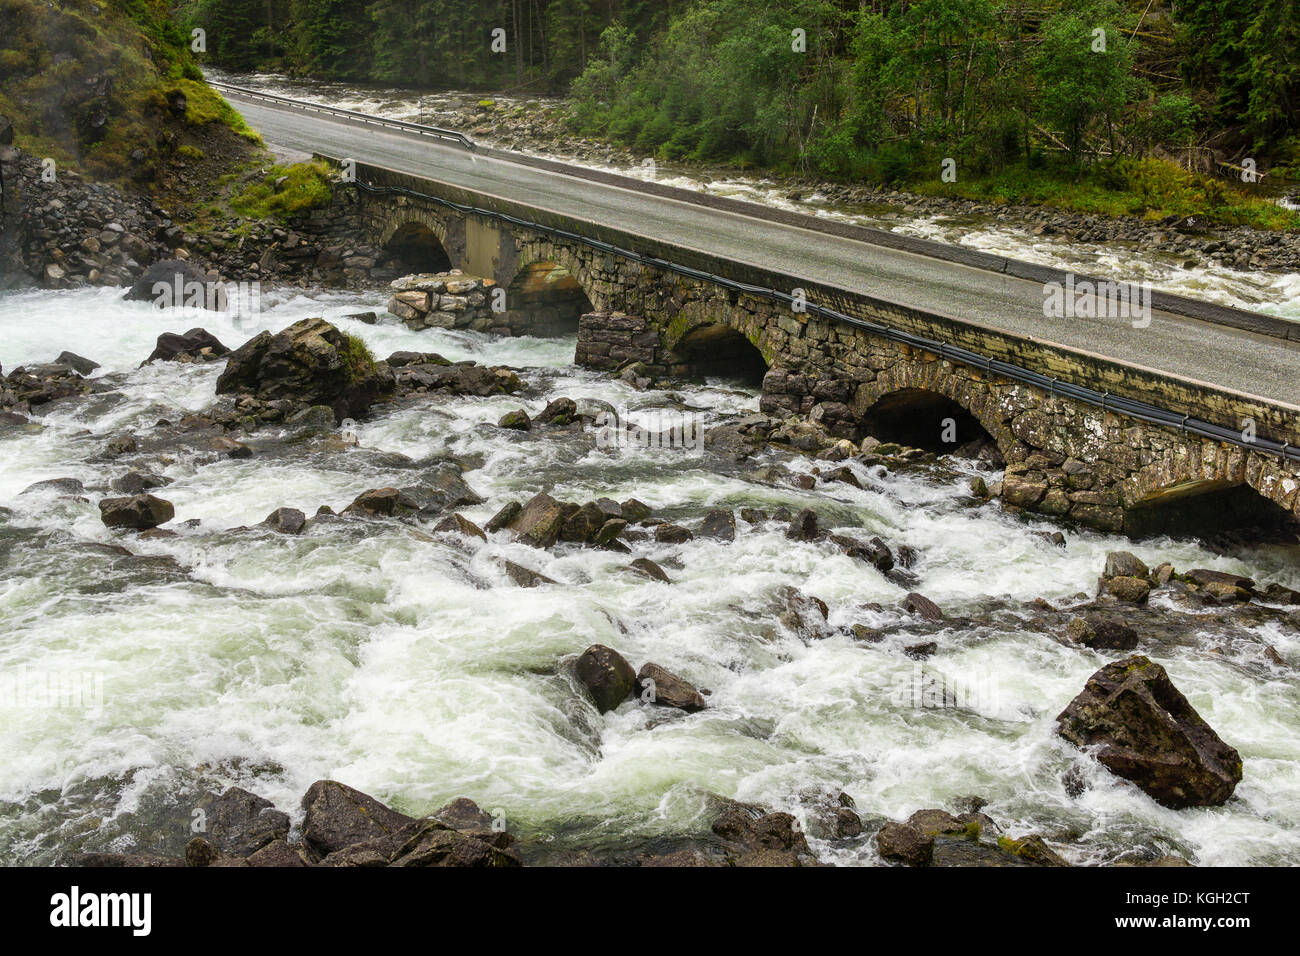 Old stone bridge. Road crossing river. Latefoss, Norway - Stock Image